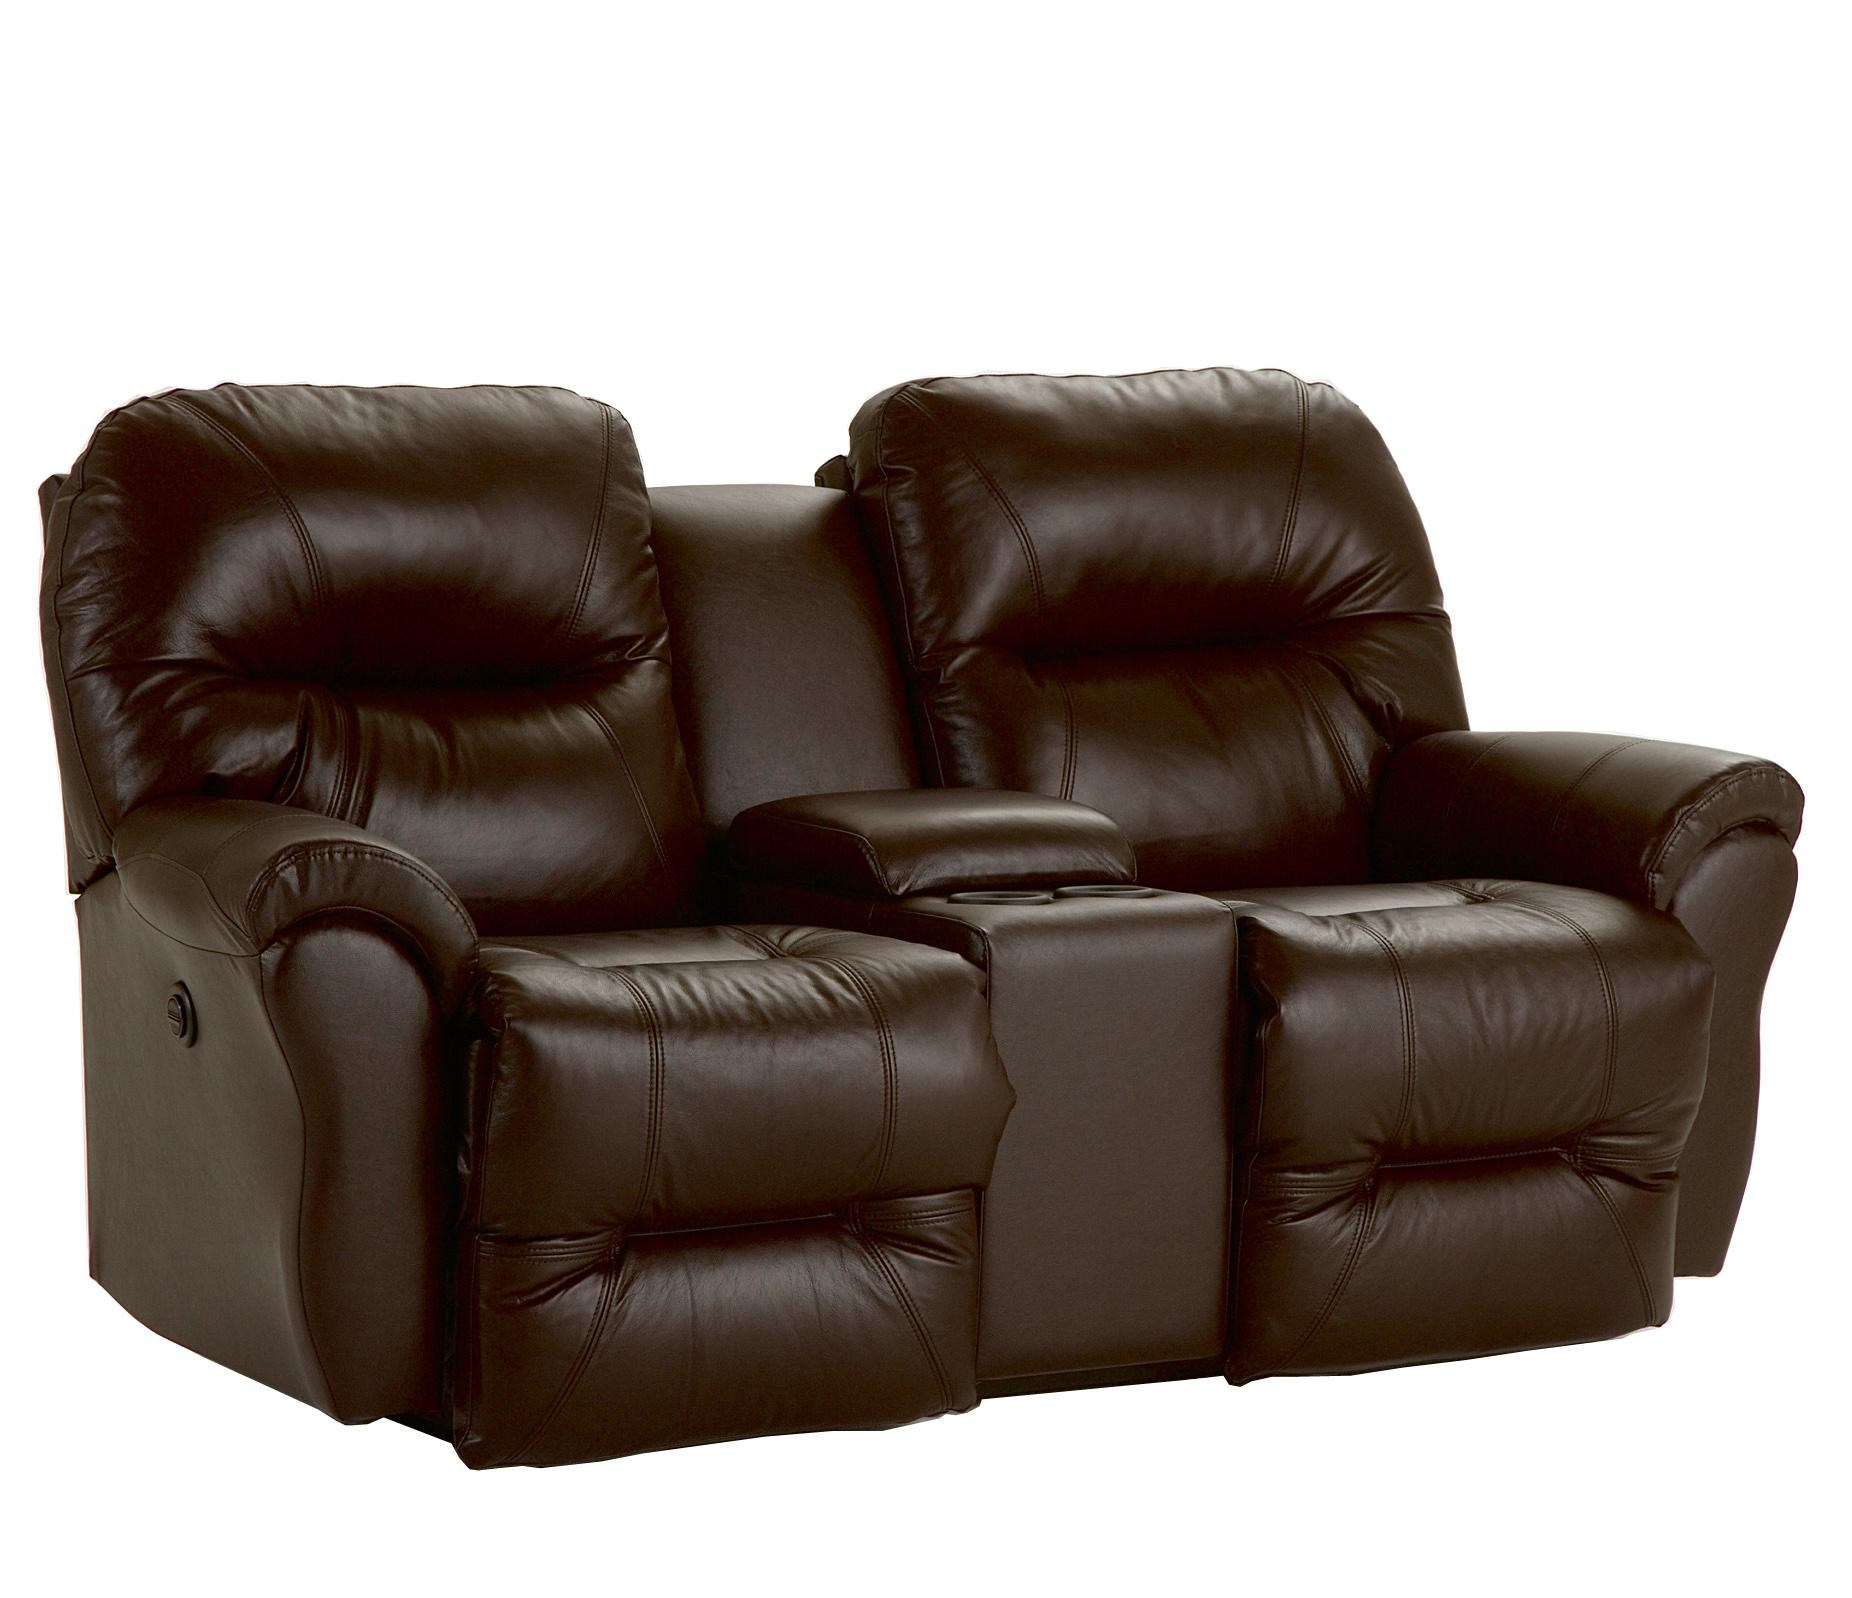 Awesome best home furnishings bodie power rocking reclining loveseat with storage  console ctctflf